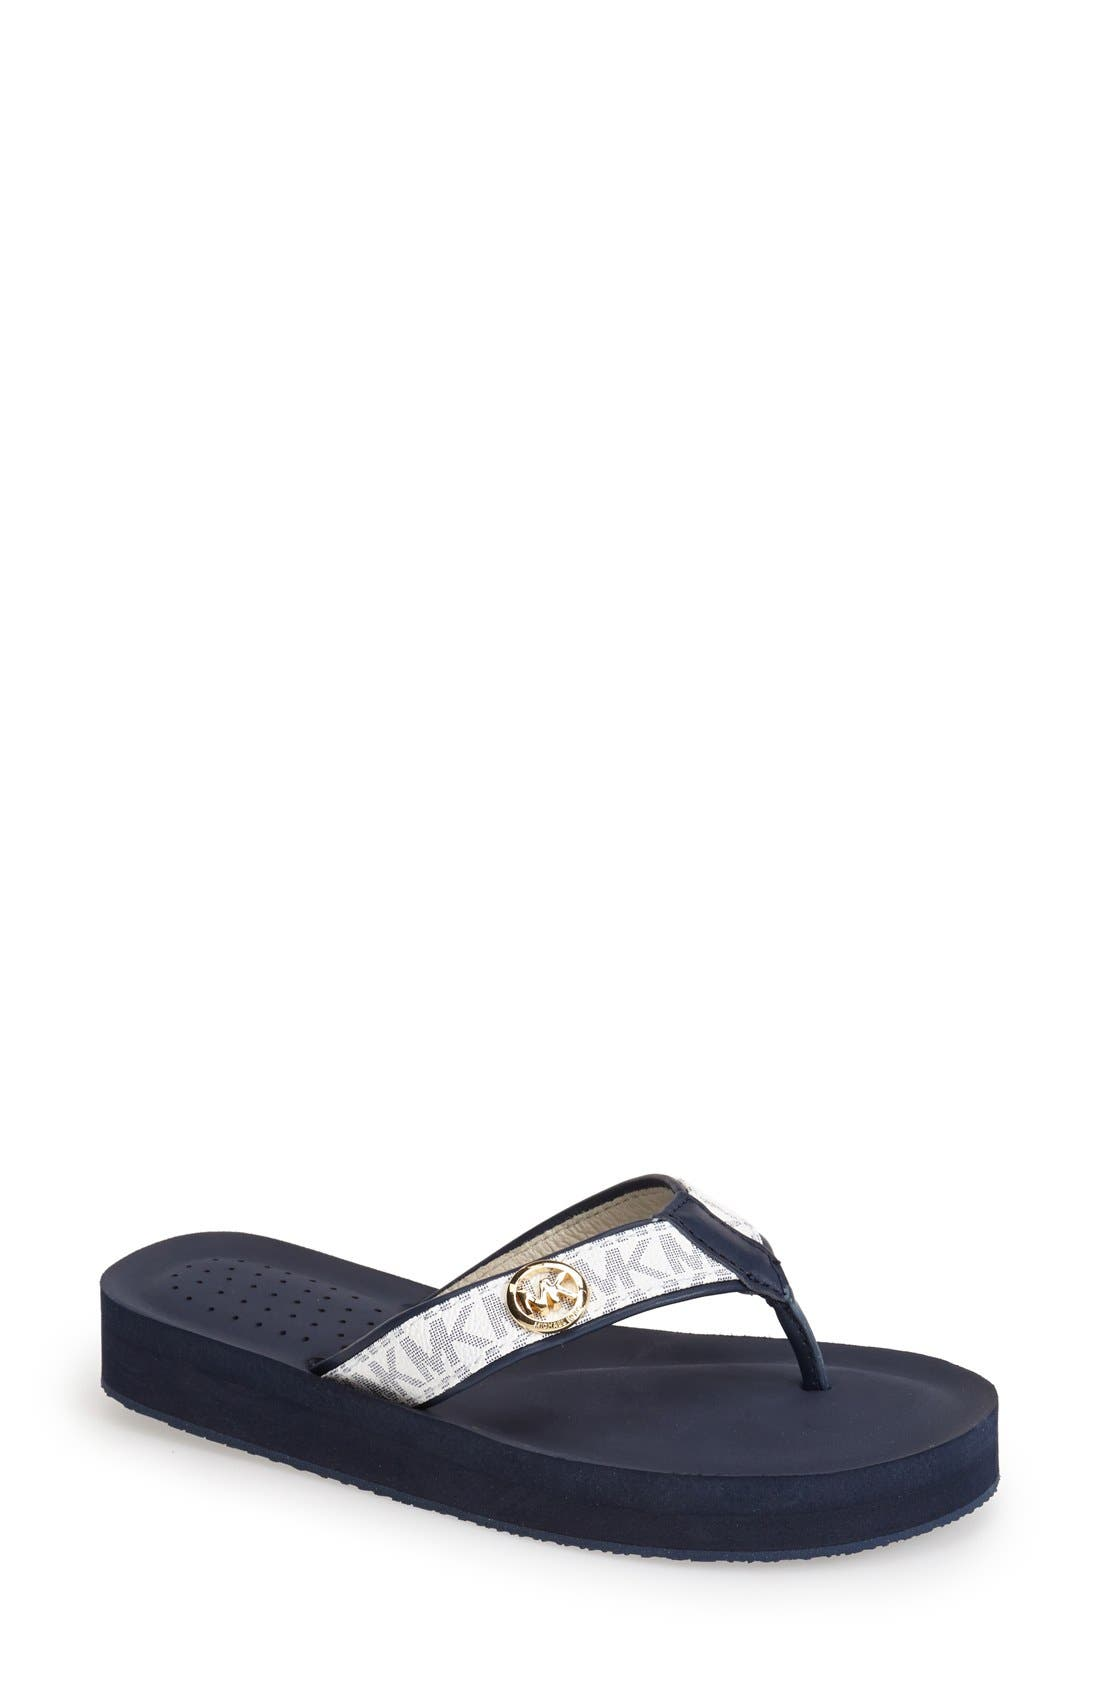 Alternate Image 1 Selected - MICHAEL Michael Kors 'Gage' Flip Flop